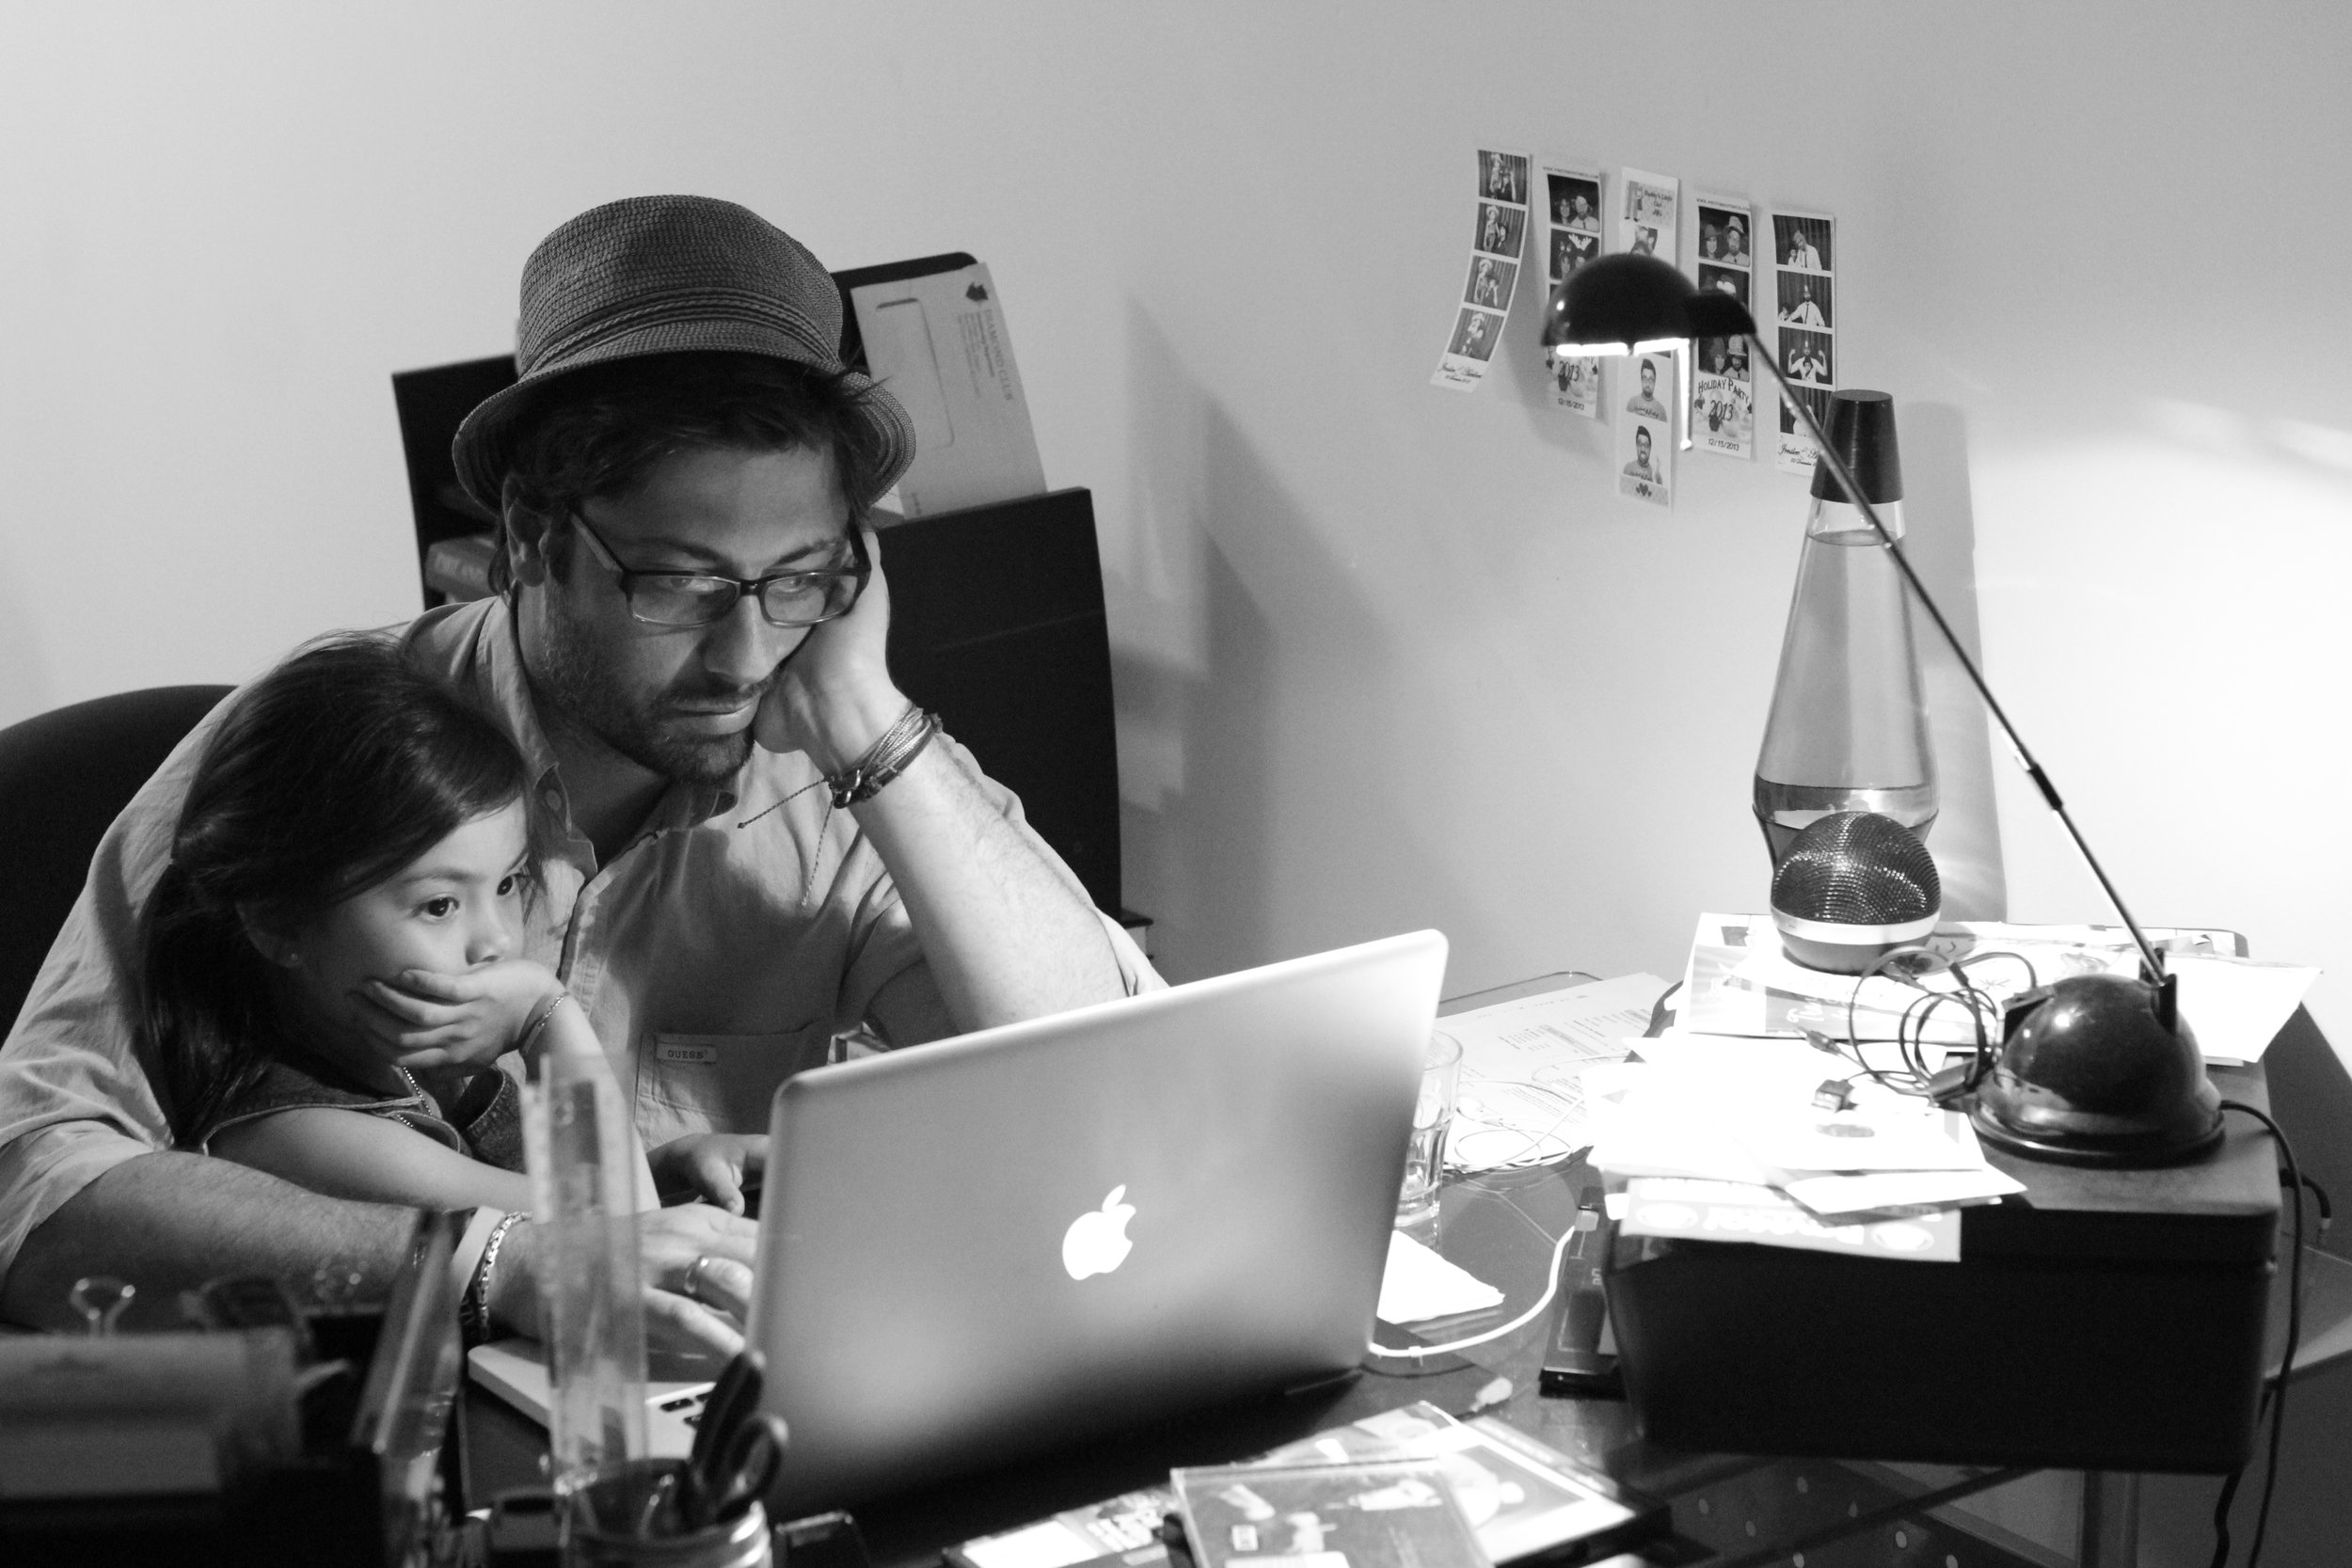 I LOVE THAT PHOTO SO MUCH... I AM RARELY ON THAT SIDE OF THE CAMERA AND THIS MOMENT IS SO GENUINE. THIS IS My oLDEST DAUGHTER AND I WATCHING VIDEOS TOGETHER.